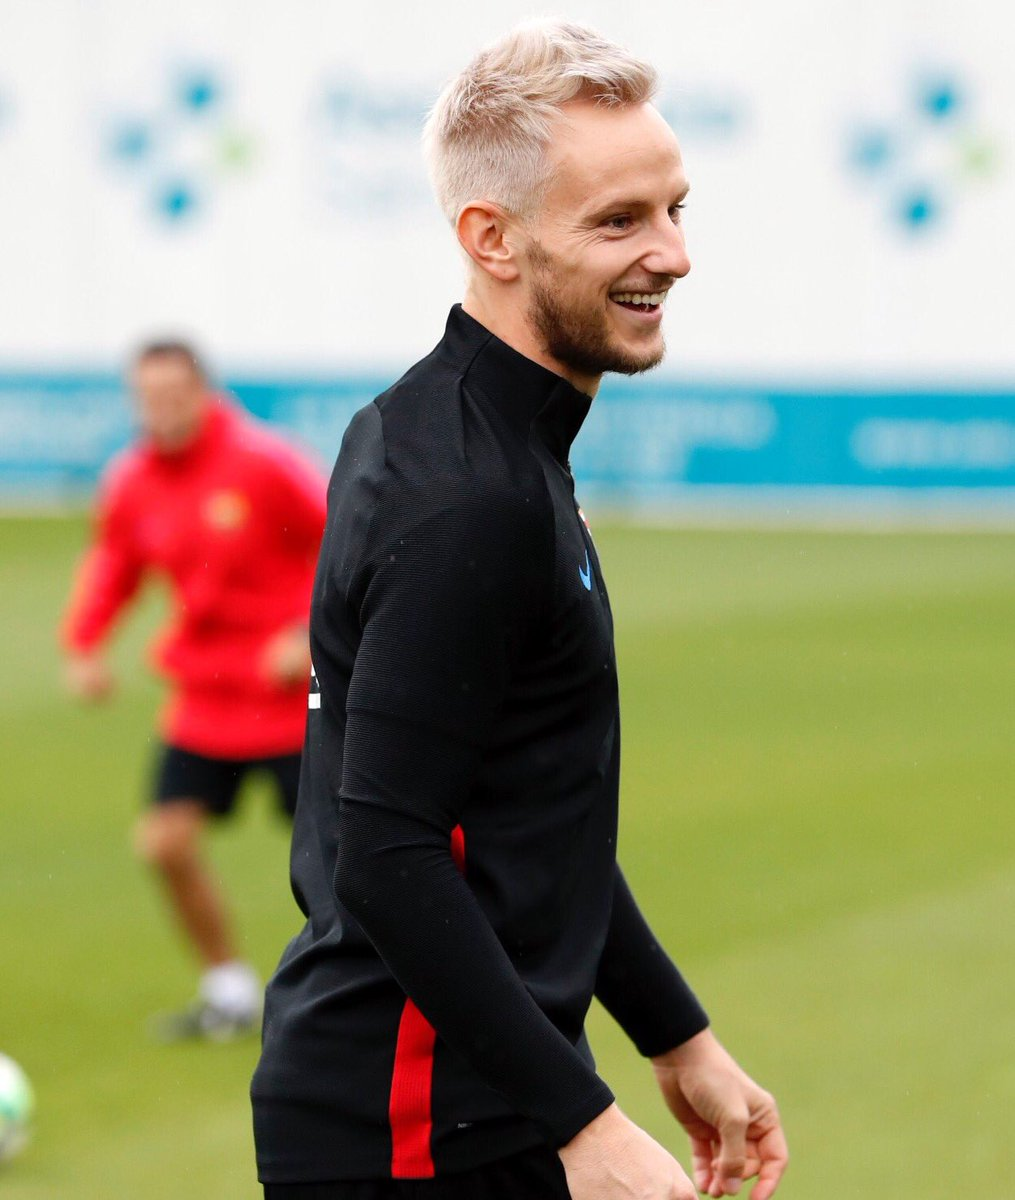 Ivan Rakitic changes his hair color in new hairstyle